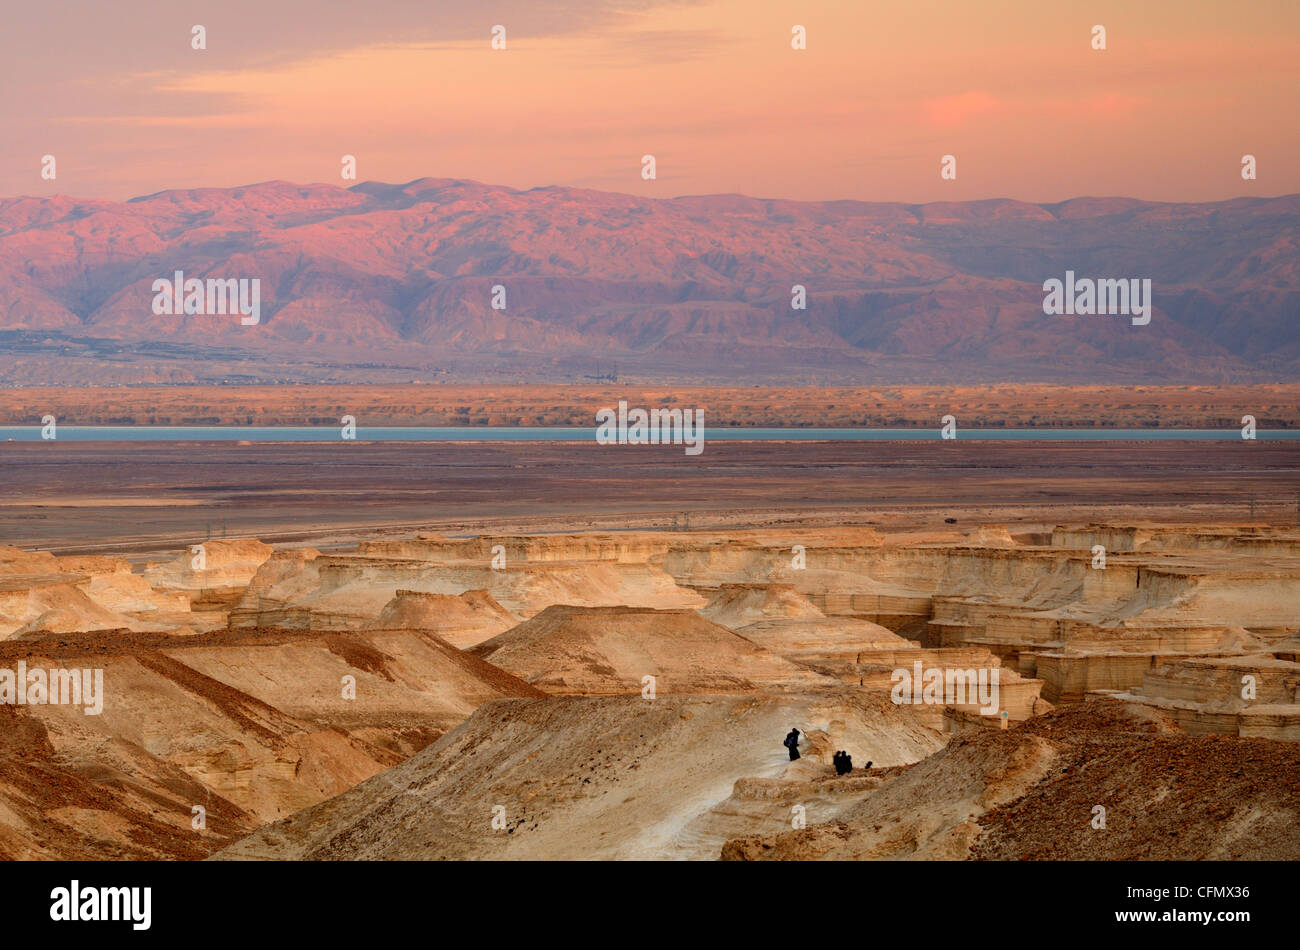 Landscape of the Judaean Desert near the Dead Sea in Israel Stock Photo